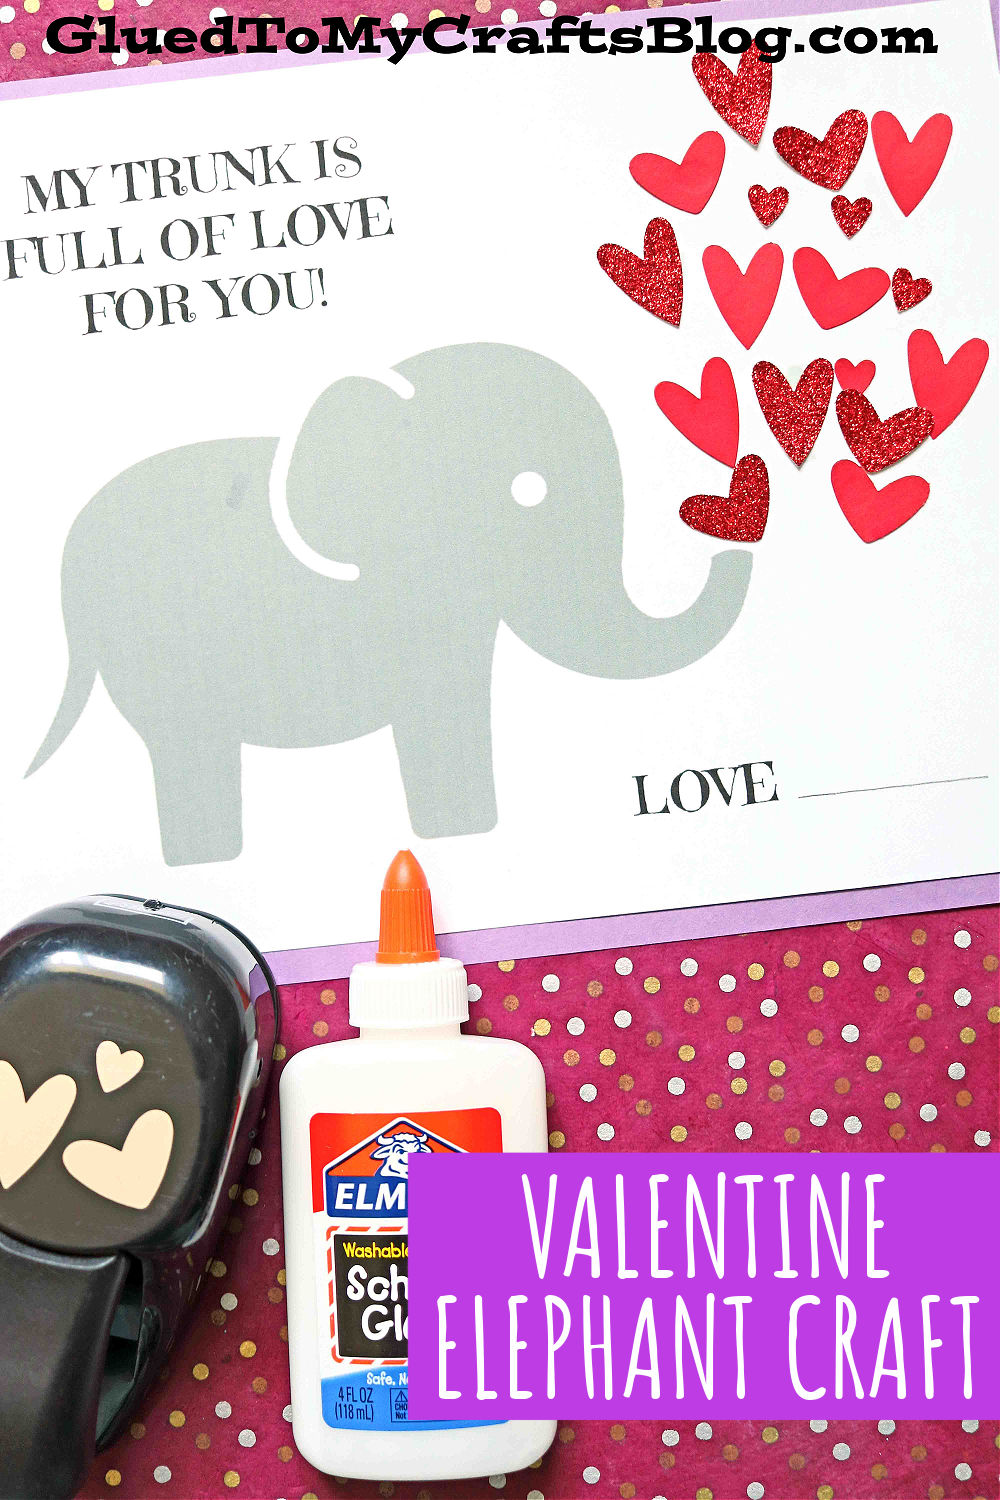 Elephant Trunk Full of Love - Paper Valentine Craft Idea For Kids To DIY